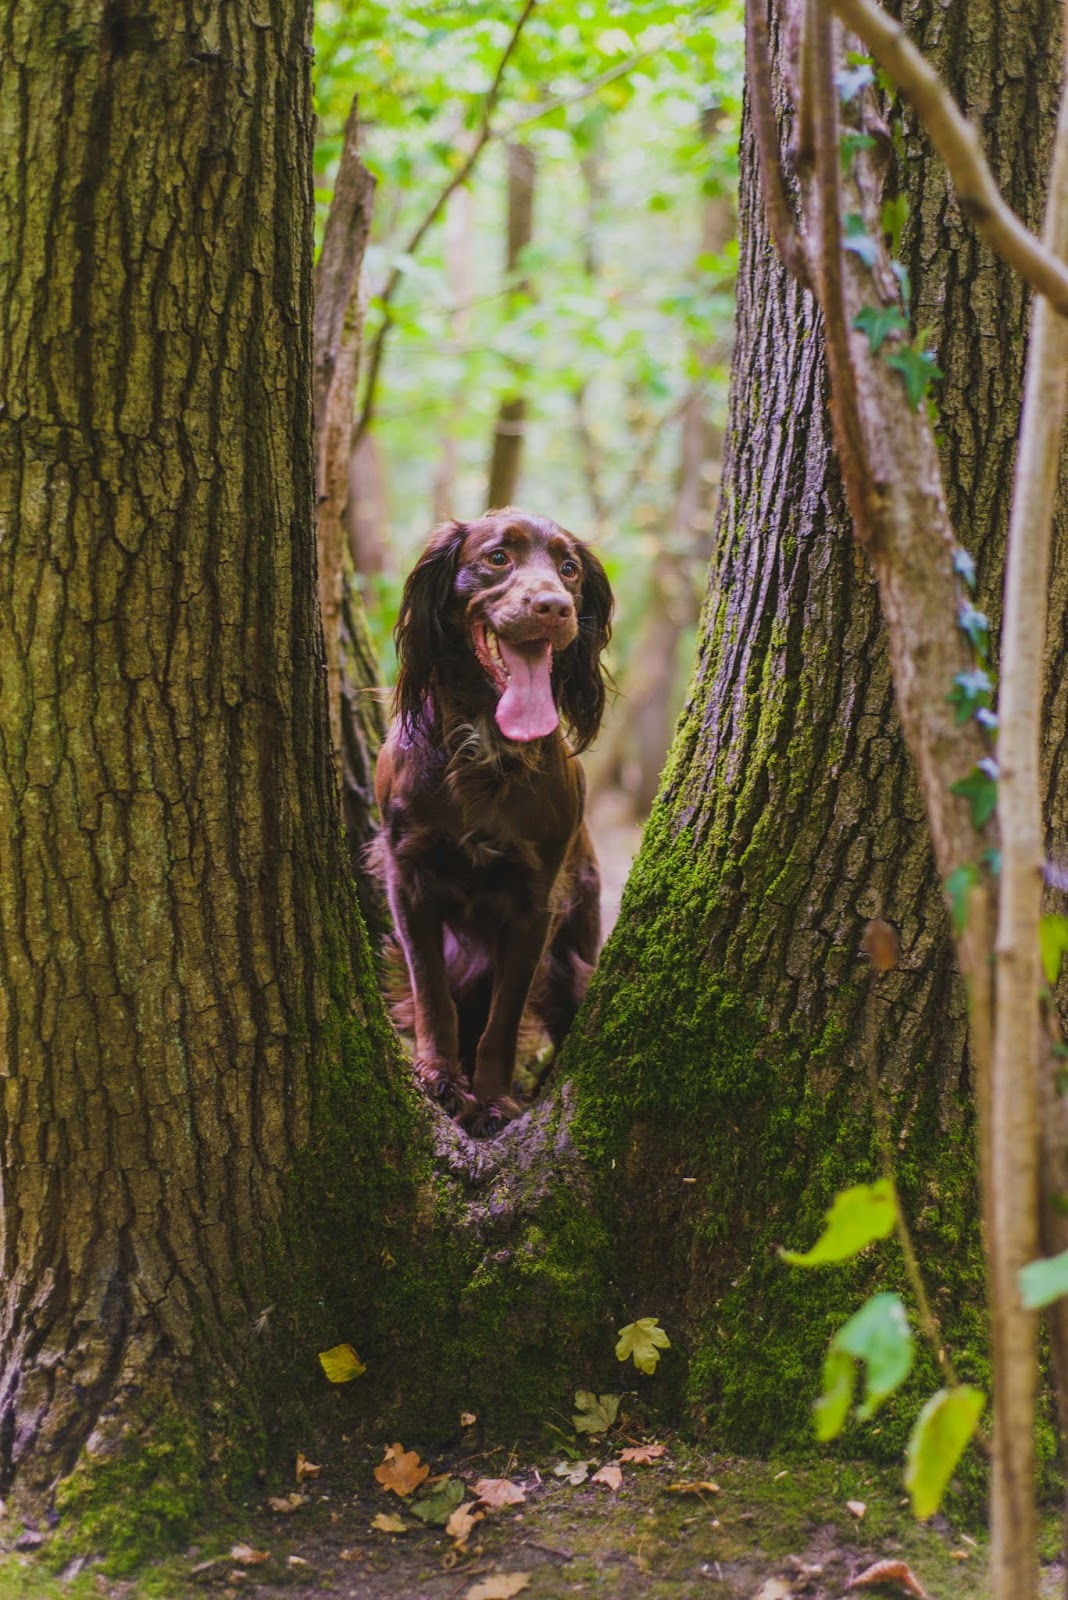 puppies dachshund cocker spaniel tree liquidgrain liquid grain